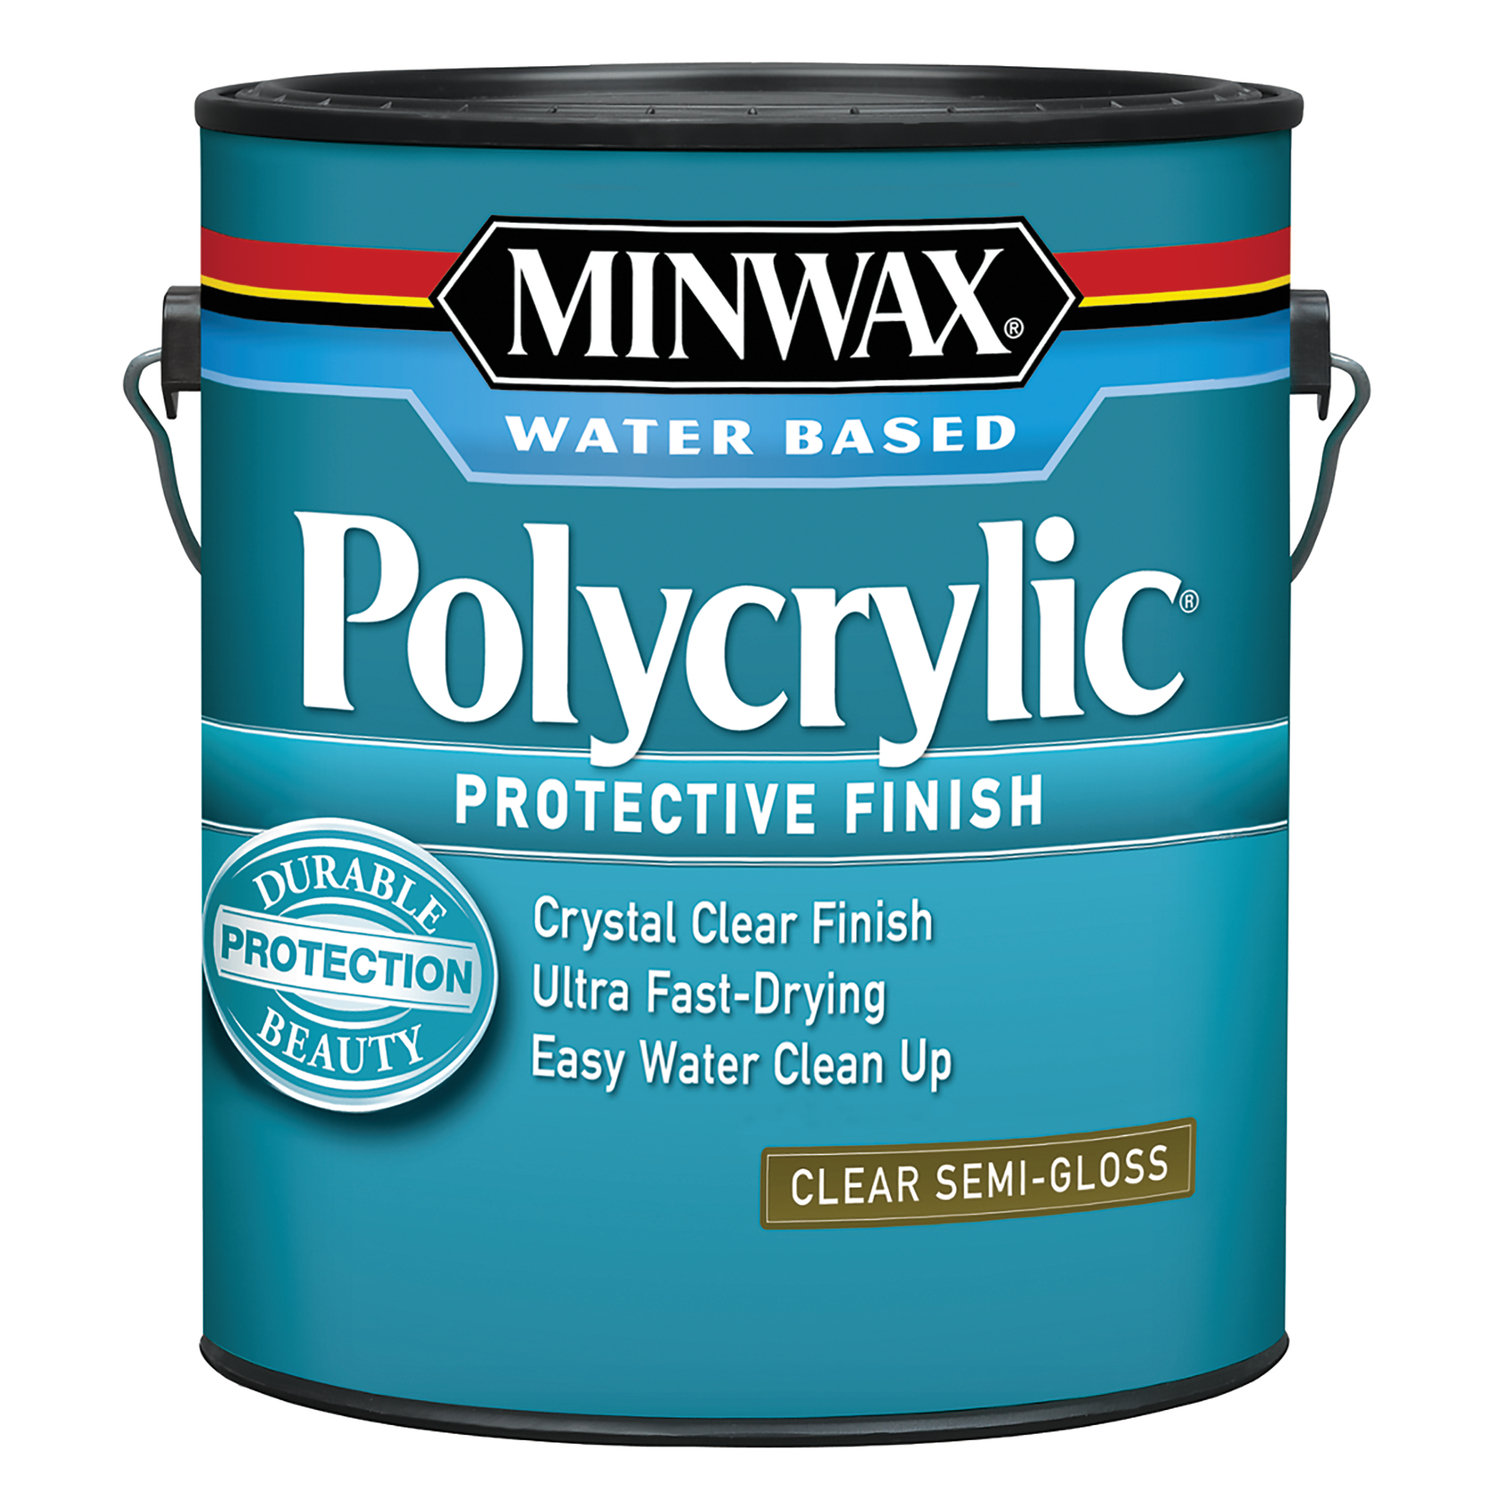 Minwax  Indoor  Clear  Semi-Gloss  Polycrylic  1 gal. Semi-Gloss